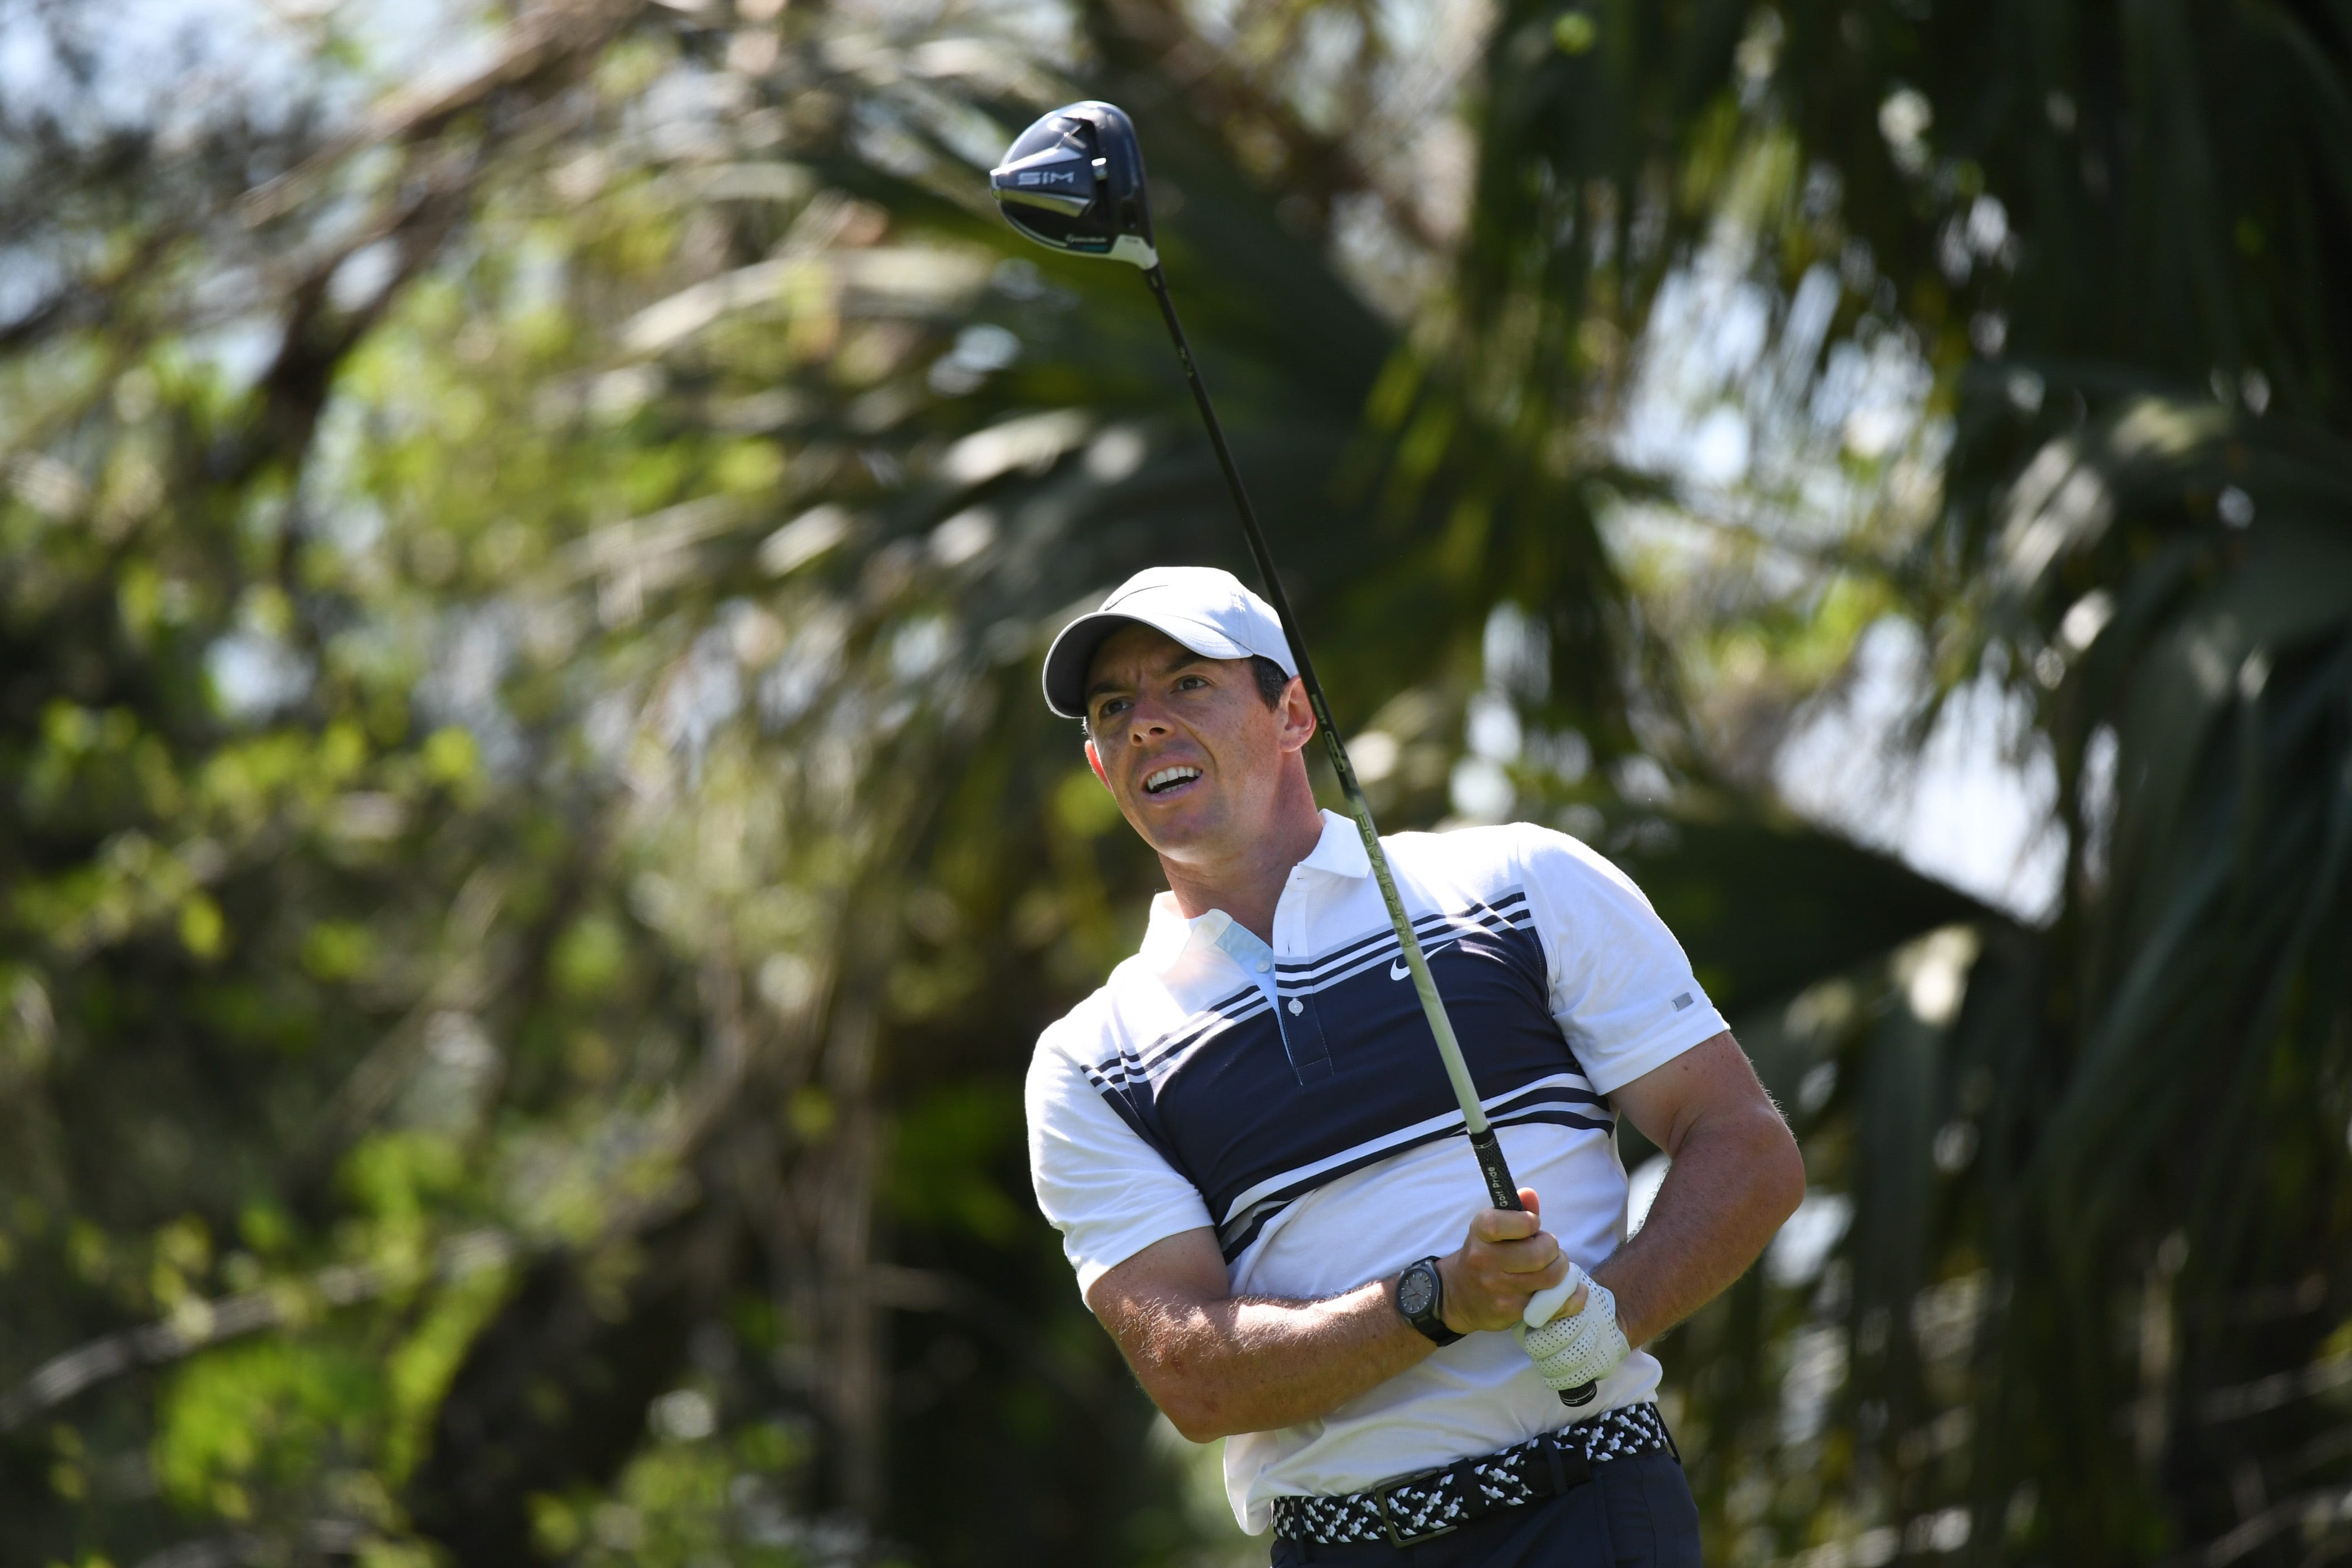 McIlroy: 'Majority of players' want Ryder Cup postponed to 2021